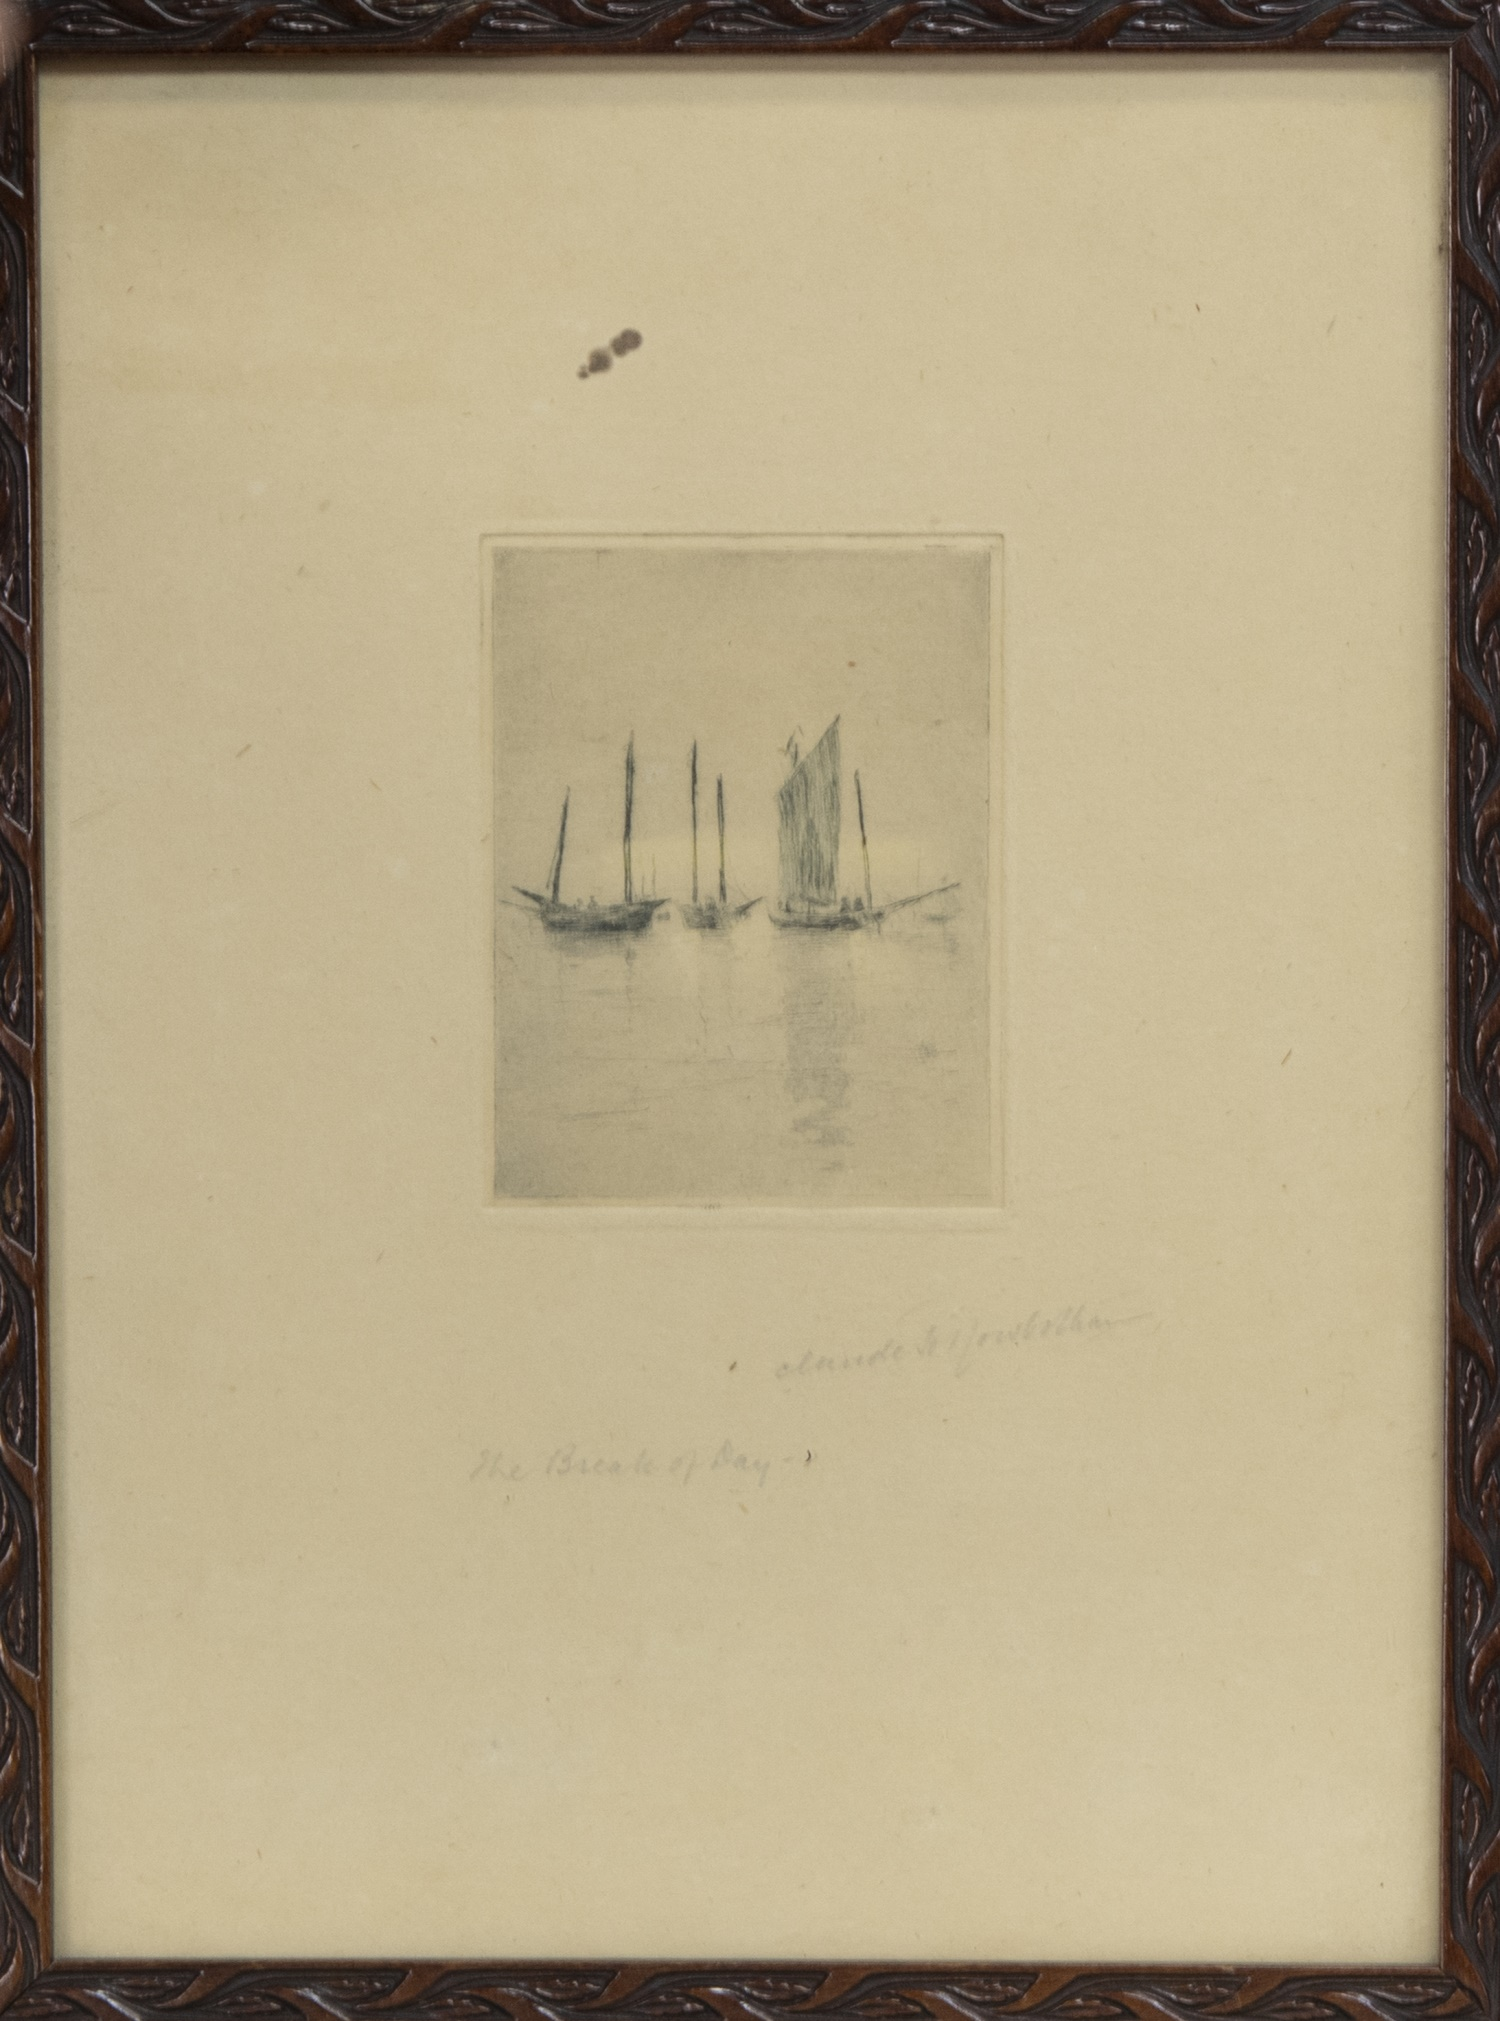 THE BREAK OF DAY, AN ETCHING BY CLAUDE HAMILTON ROWBOTHAM